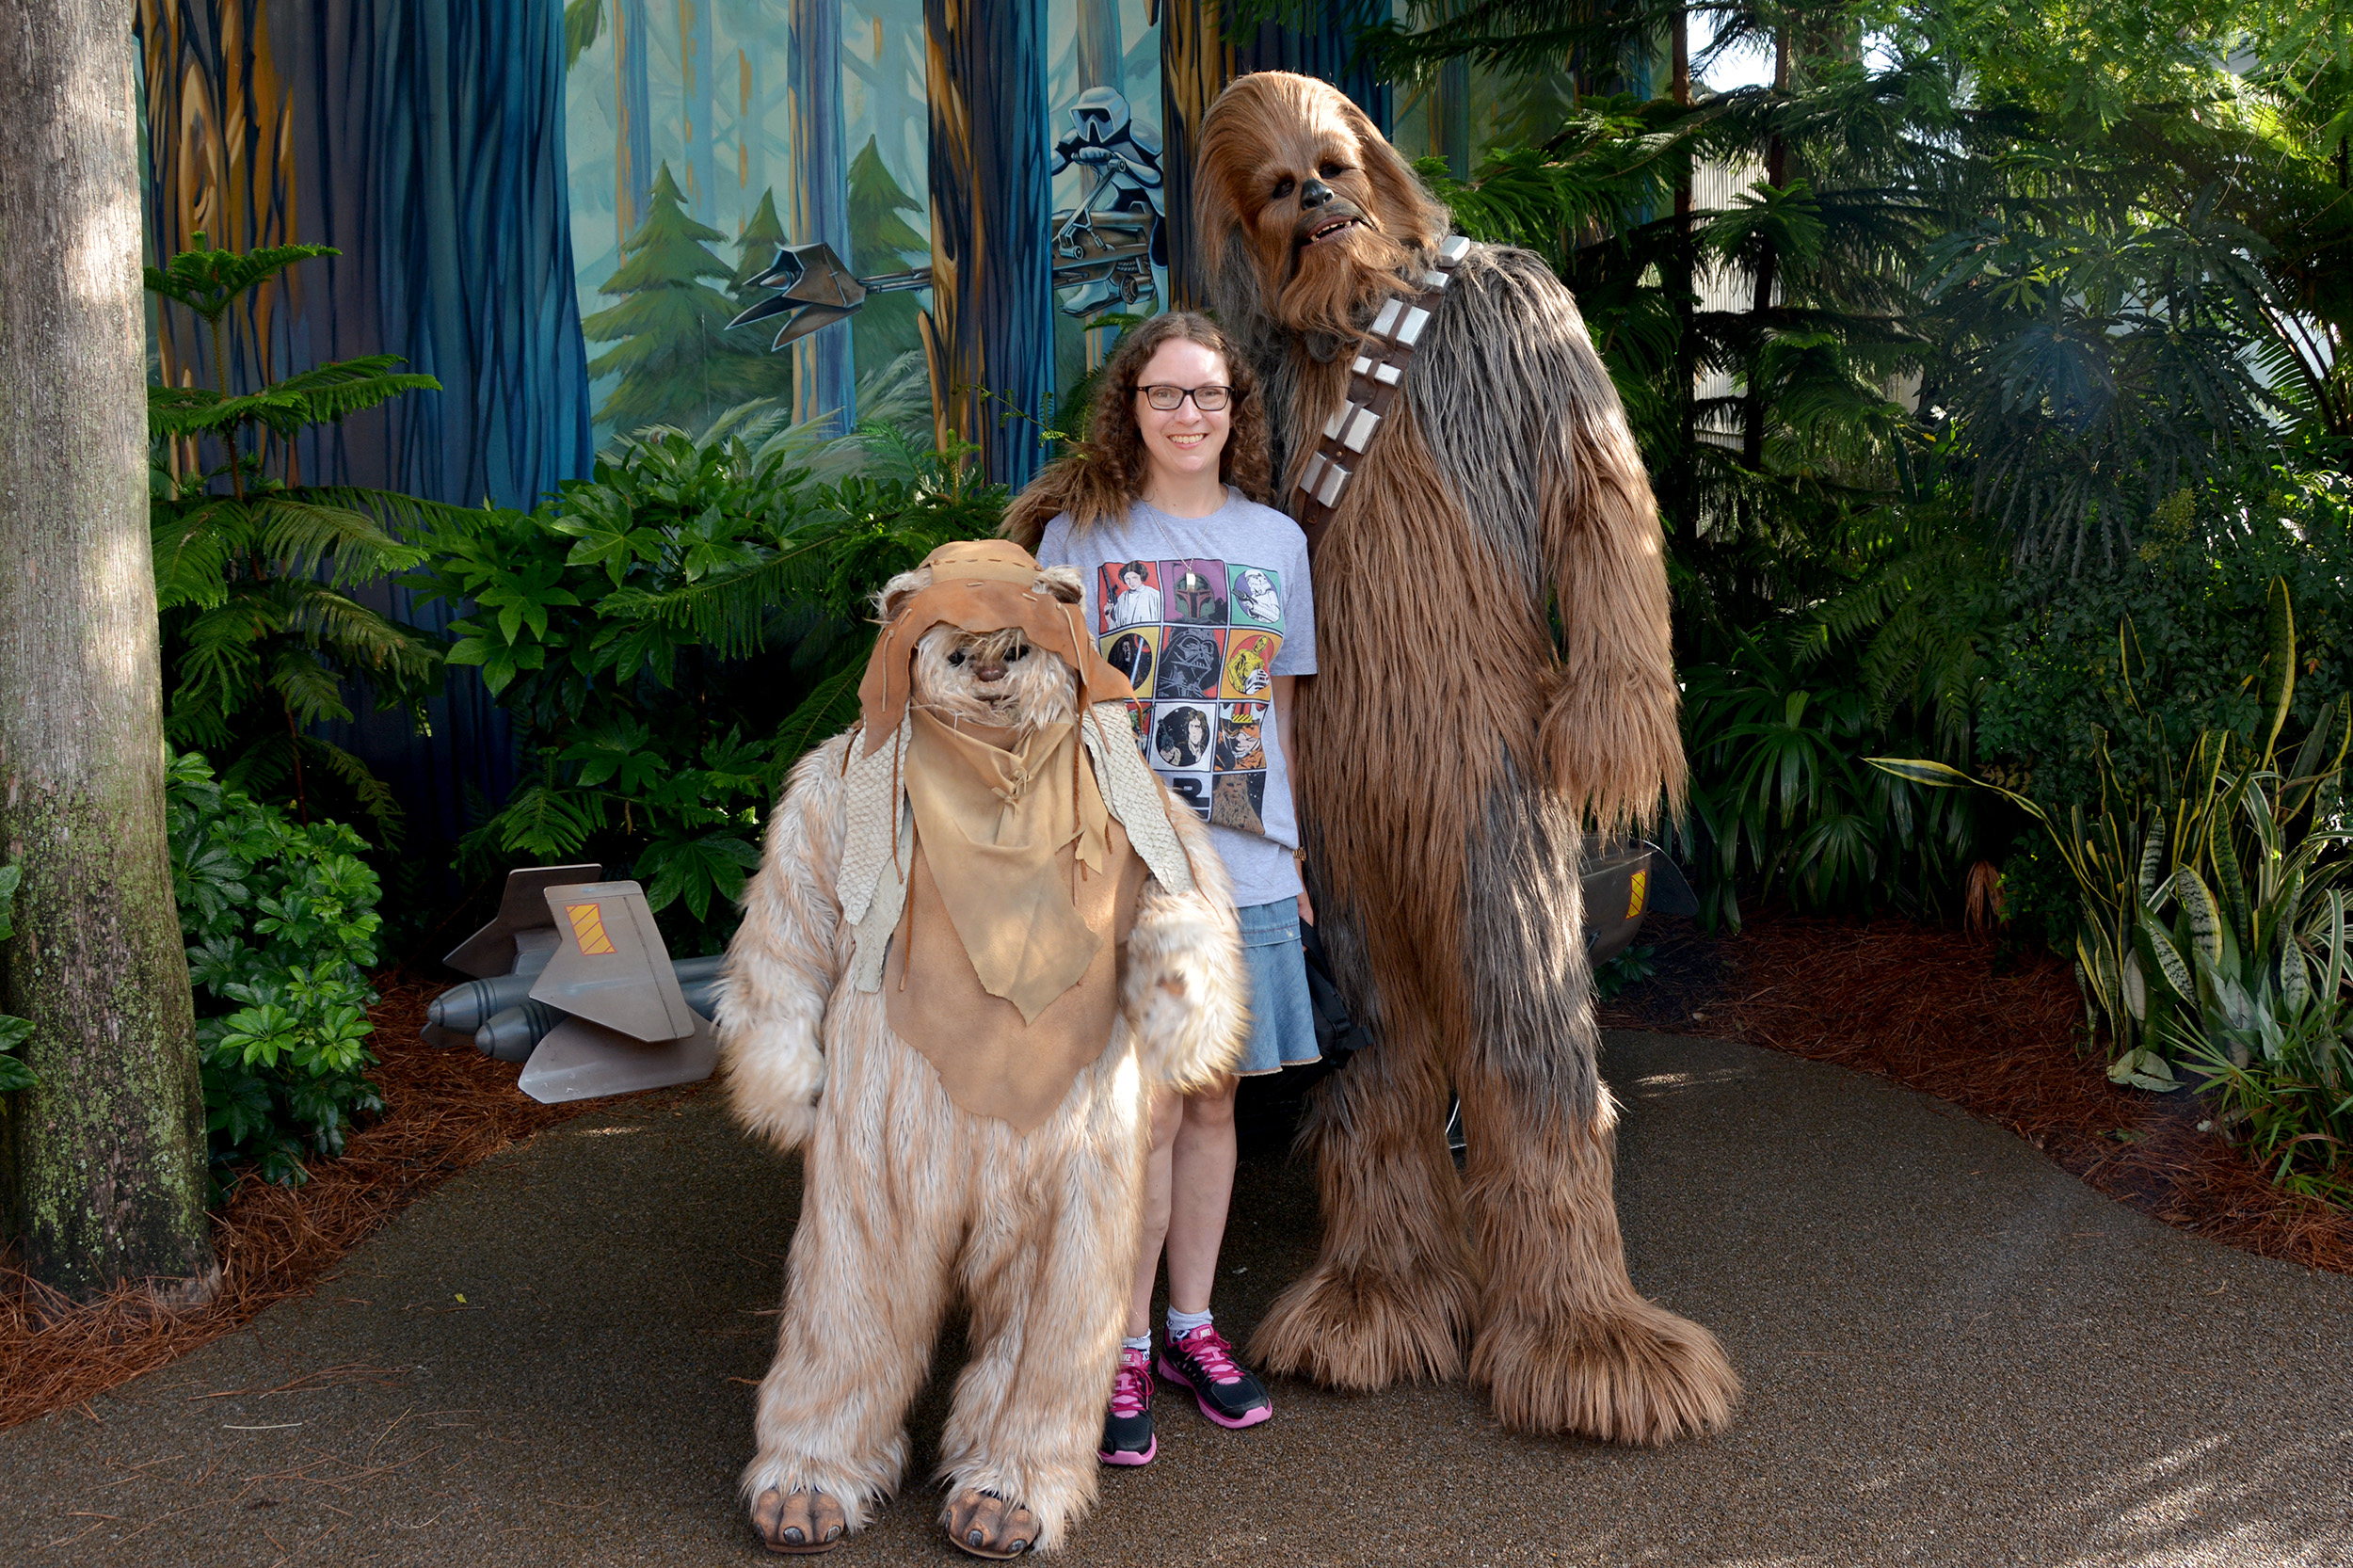 Chewbacca star wars weekends